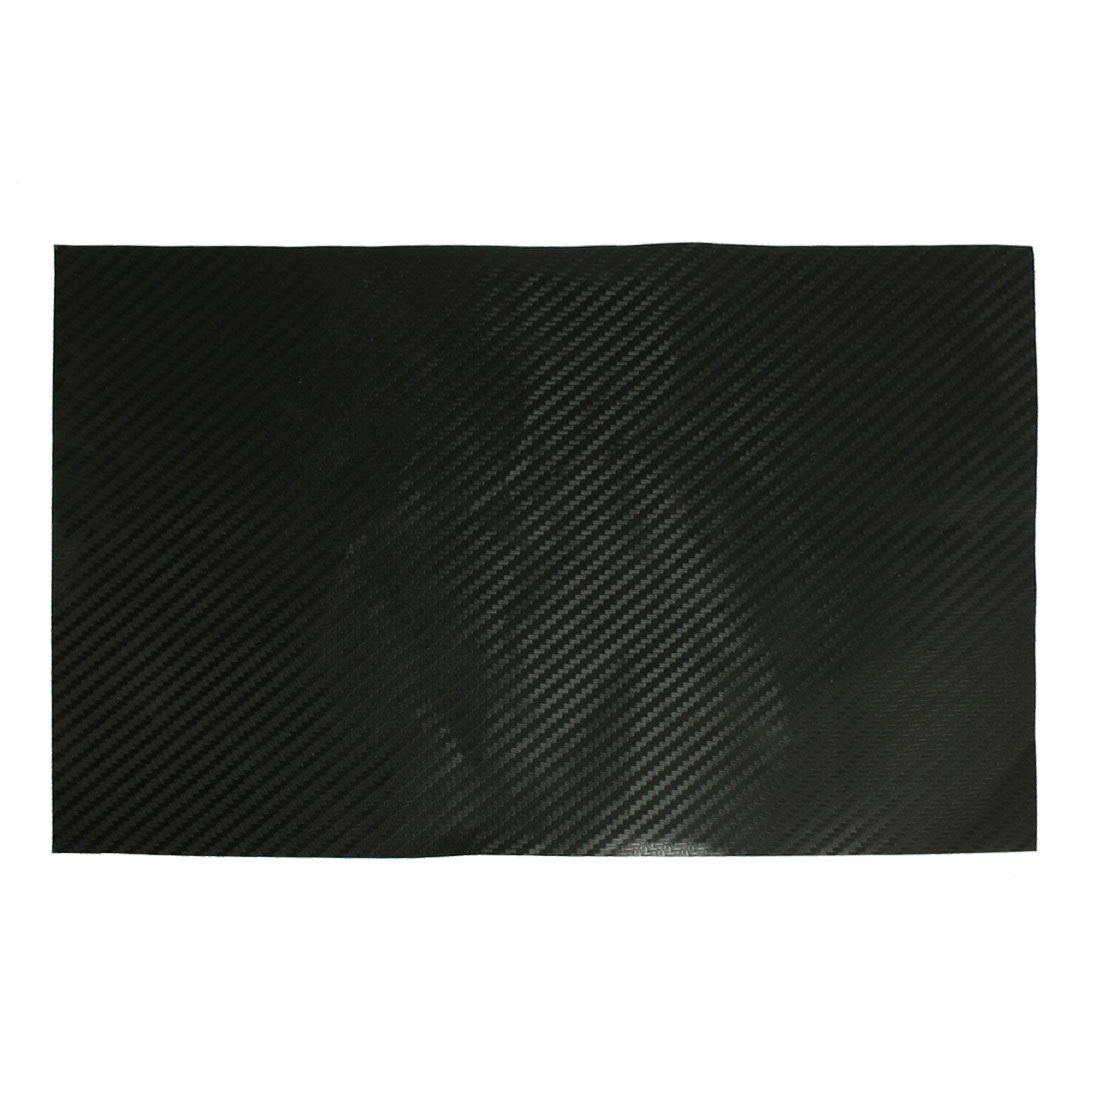 Rectangle Black 3D Car Carbon Fiber Vinyl Decal Sticker 20x30cm